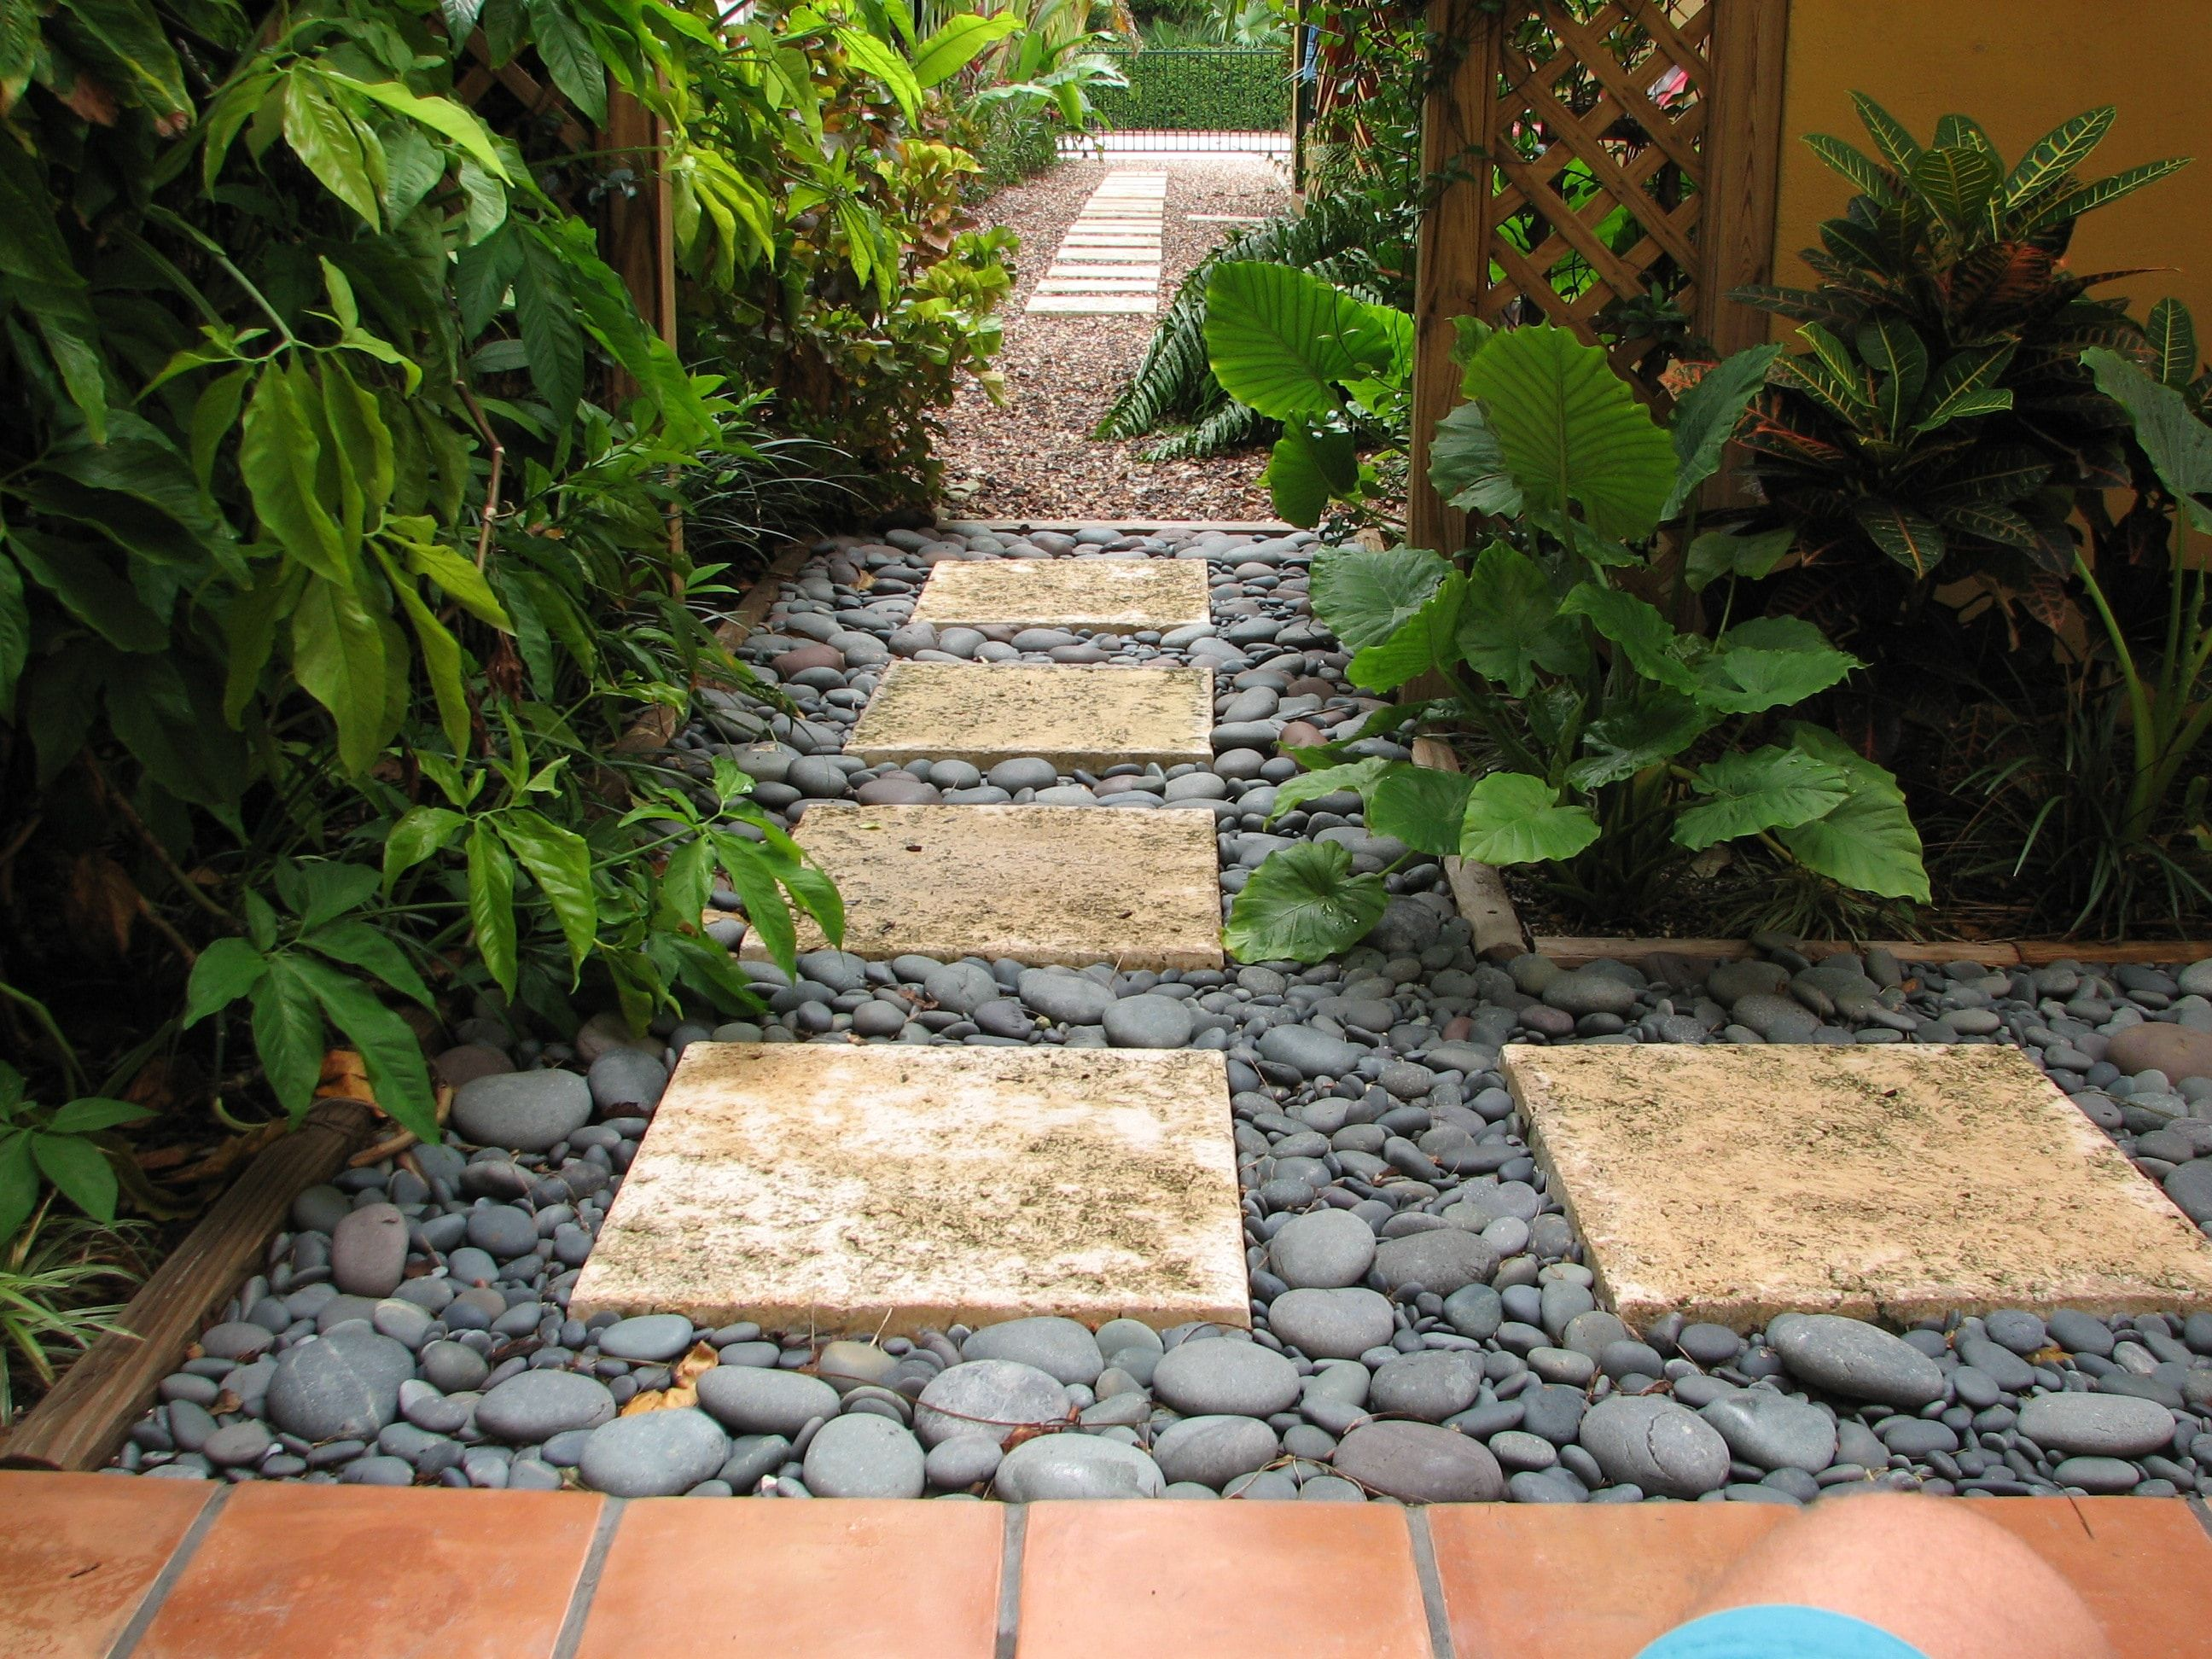 Black Pebbles And Firelite Garden 2   Olimar Stone, Decorative Stone, Beach  Pebbles, Garden Rocks In South Florida